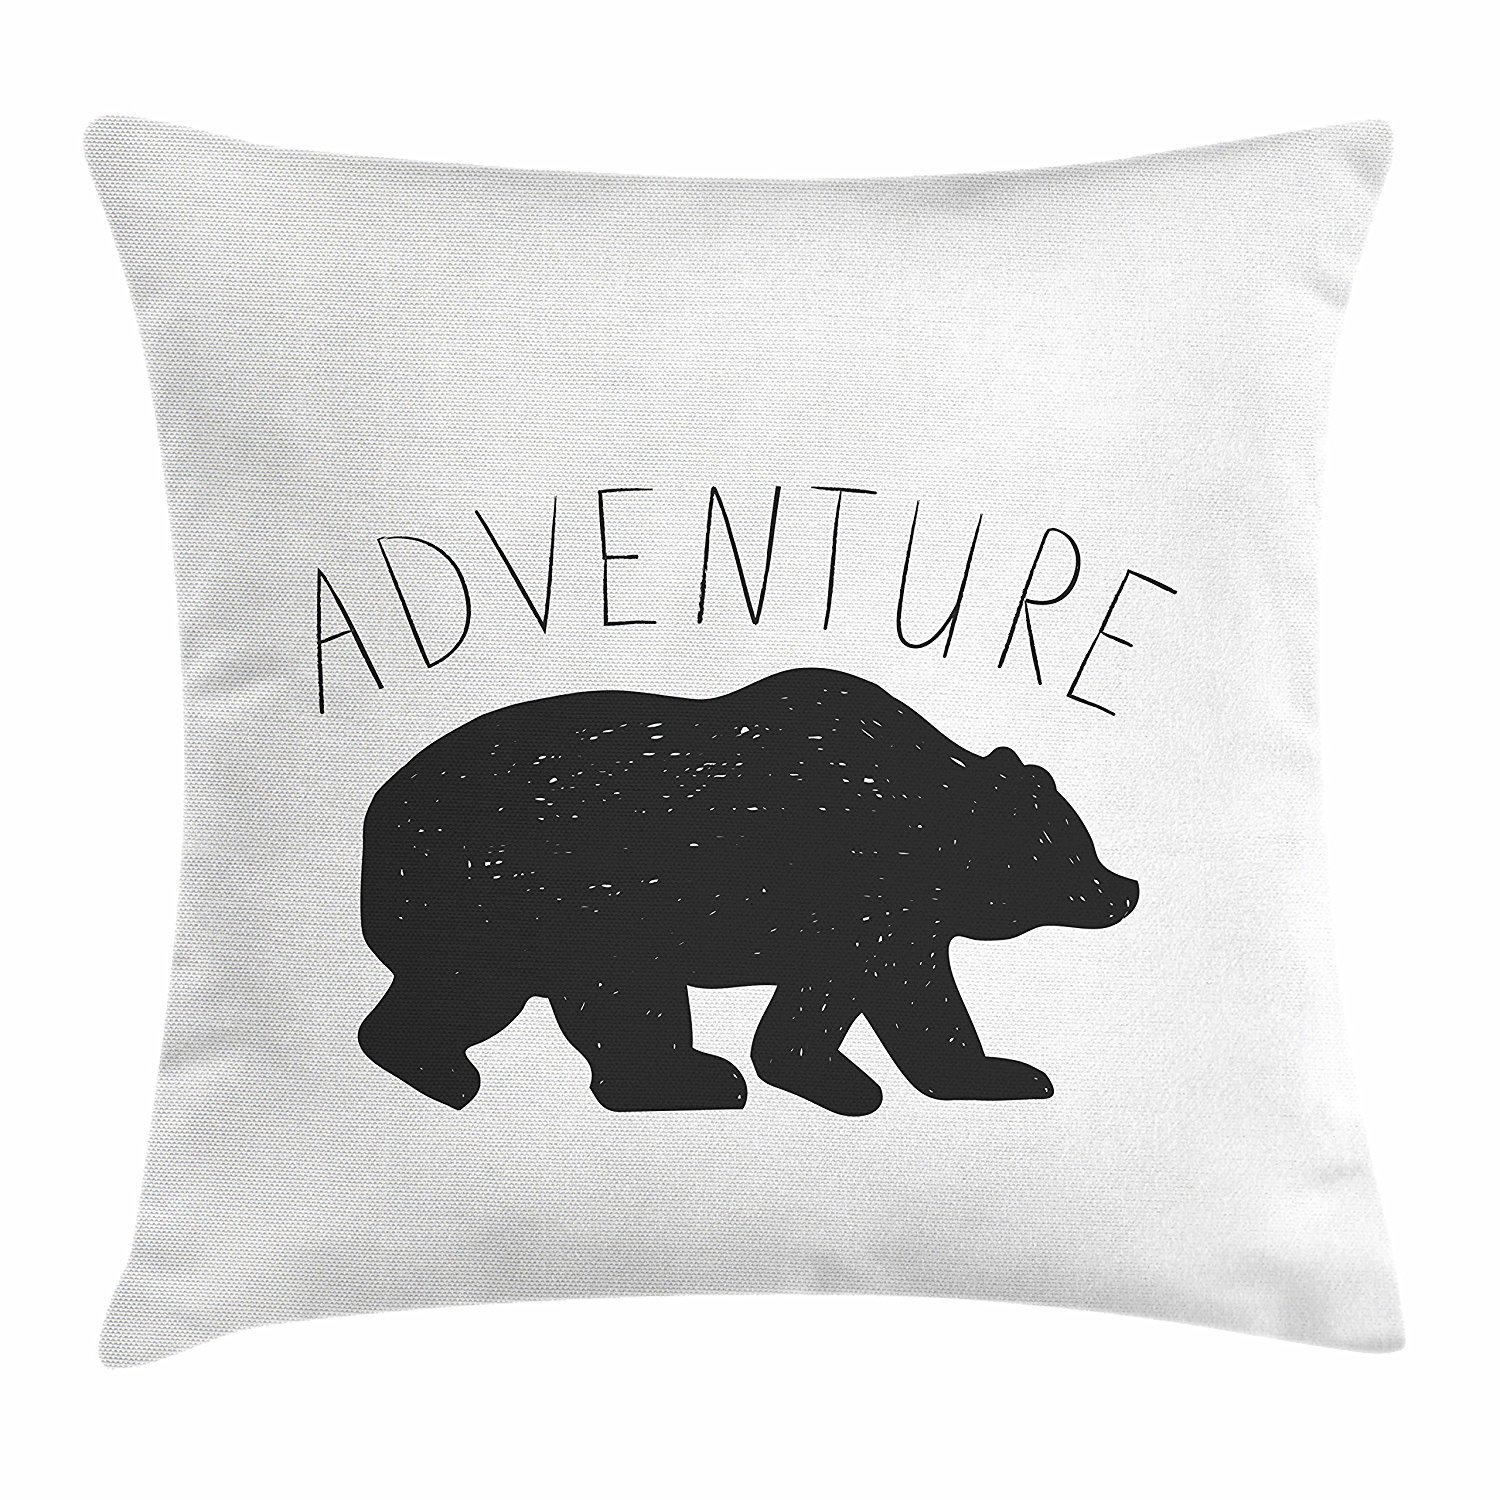 Adventure Throw Pillow Cushion Cover, Black Silhouette of a Wild Bear Zoo Animal Nature Passion Hipster Design, Decorative Square Accent Pillow Case, 18 X 18 inches, Charcoal Grey White Cool pillow